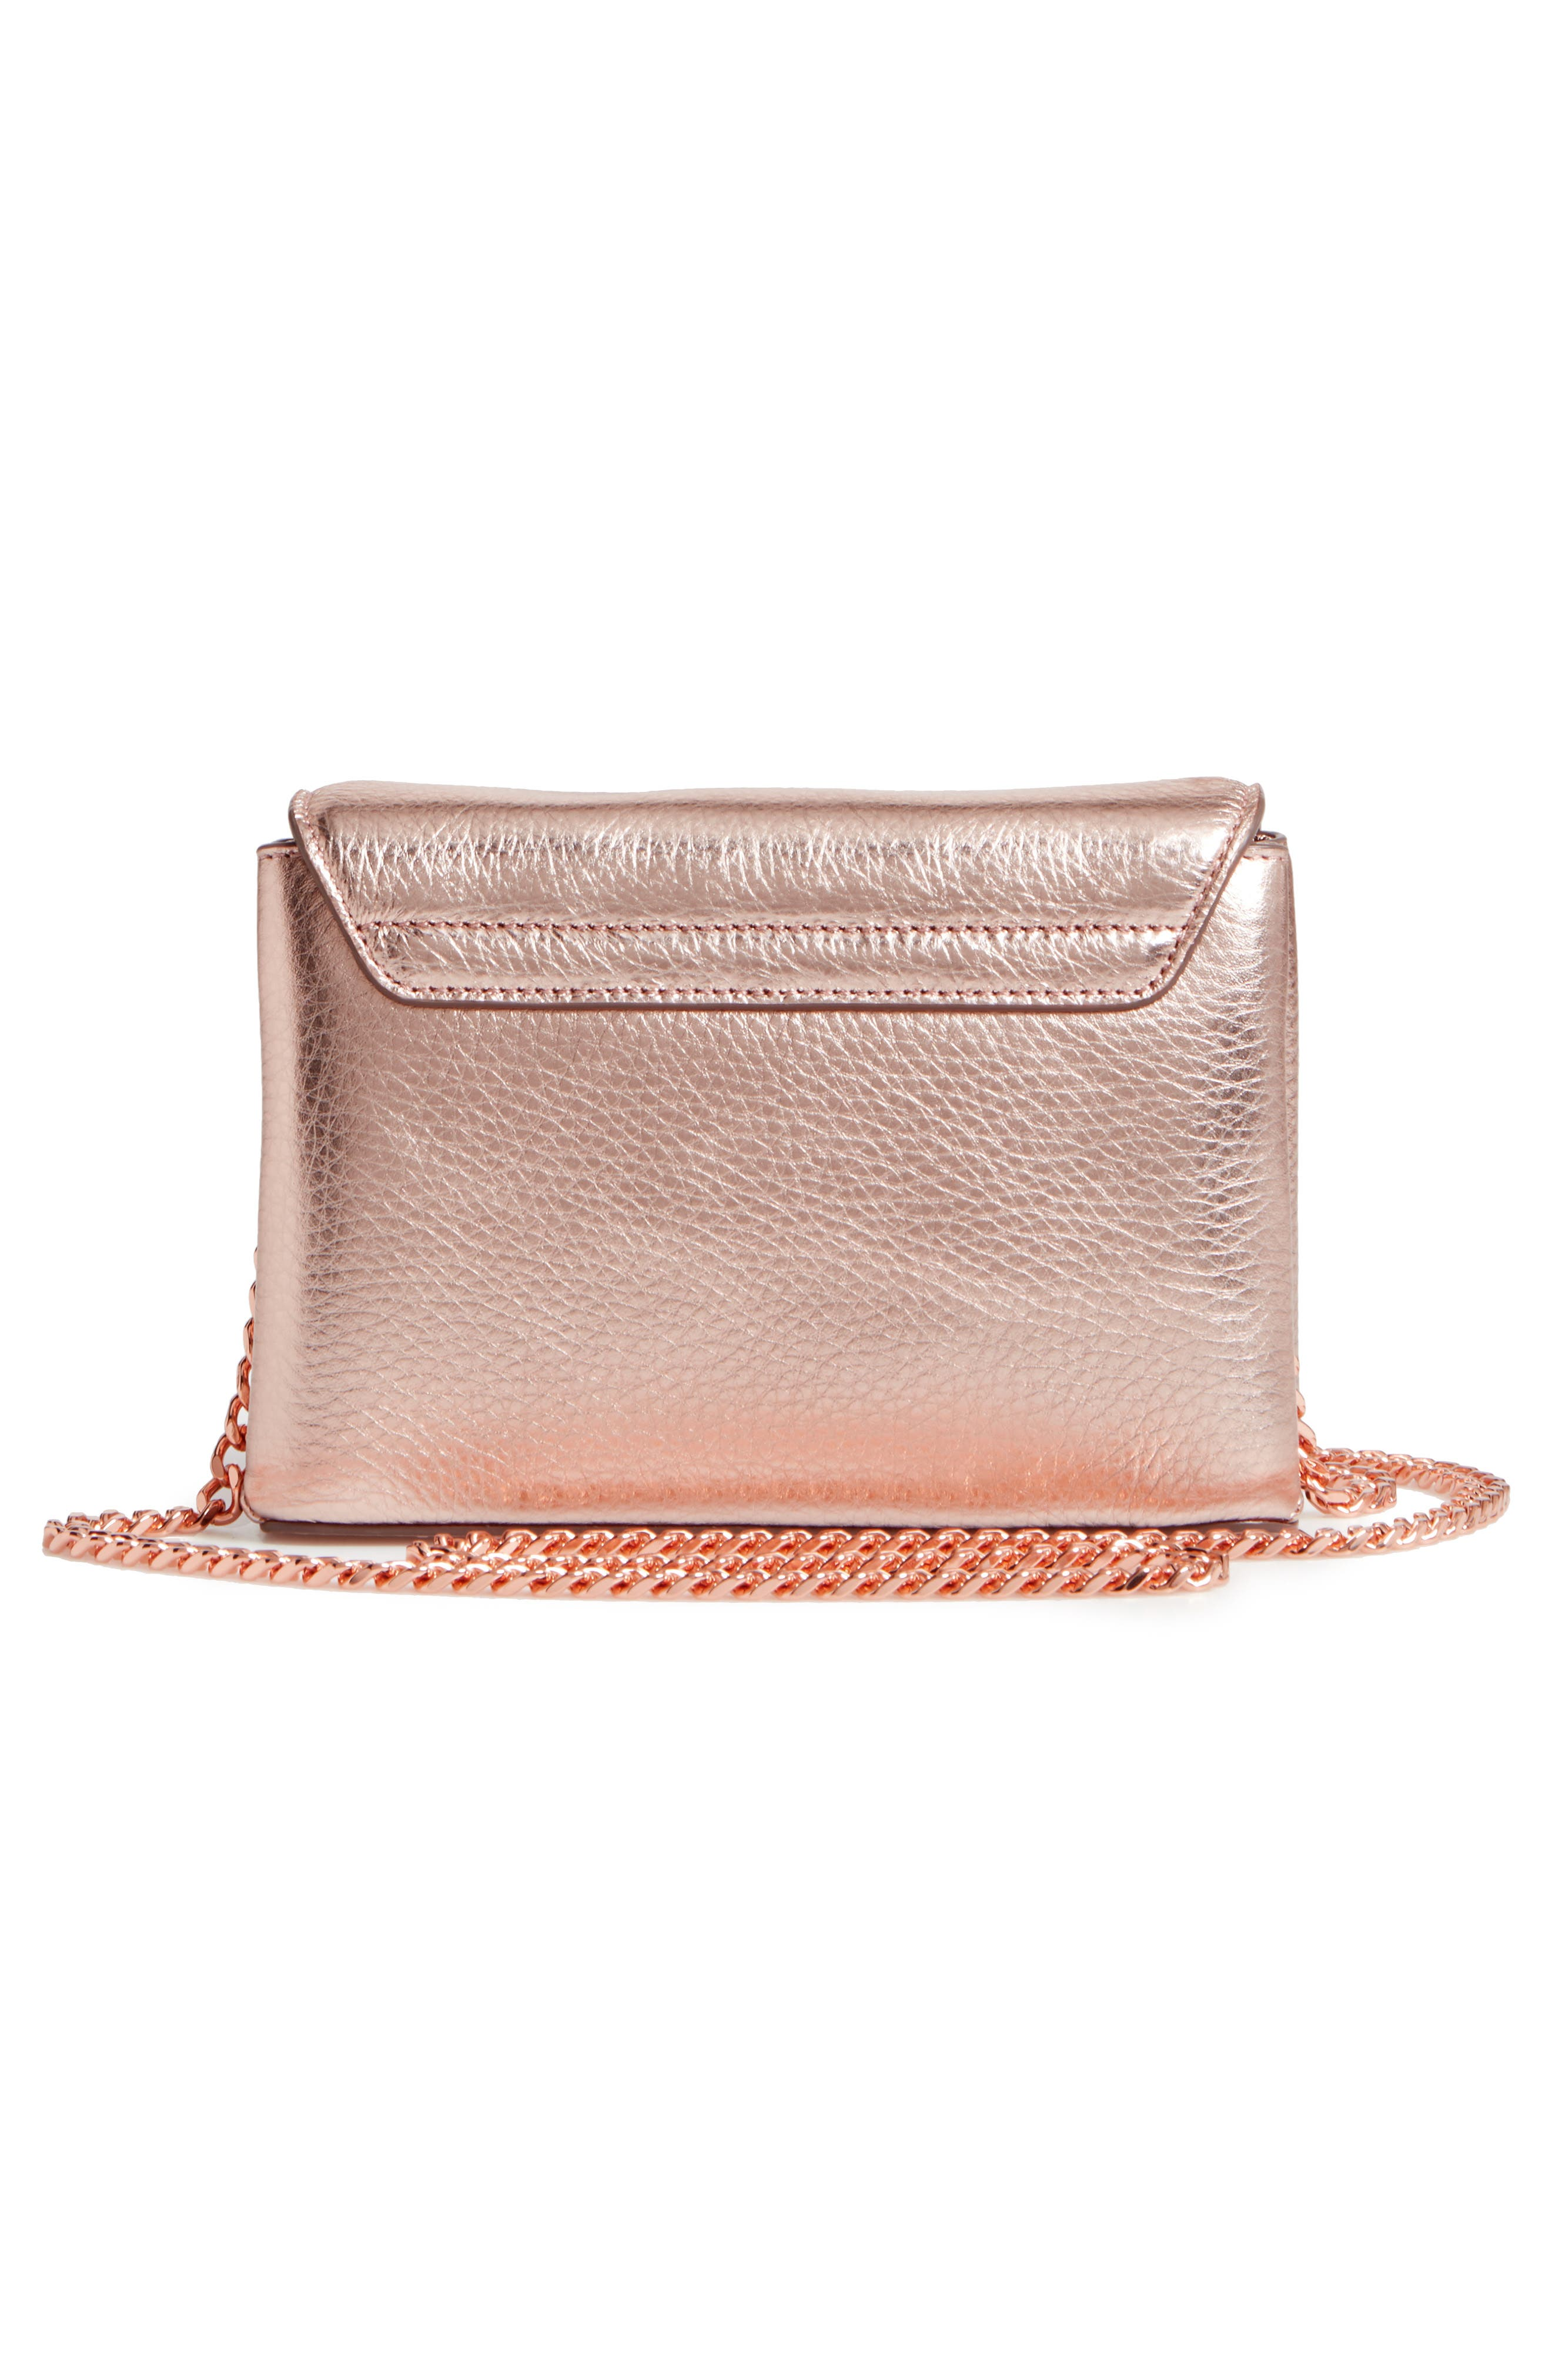 Lupiin Metallic Leather Crossbody Bag,                             Alternate thumbnail 6, color,